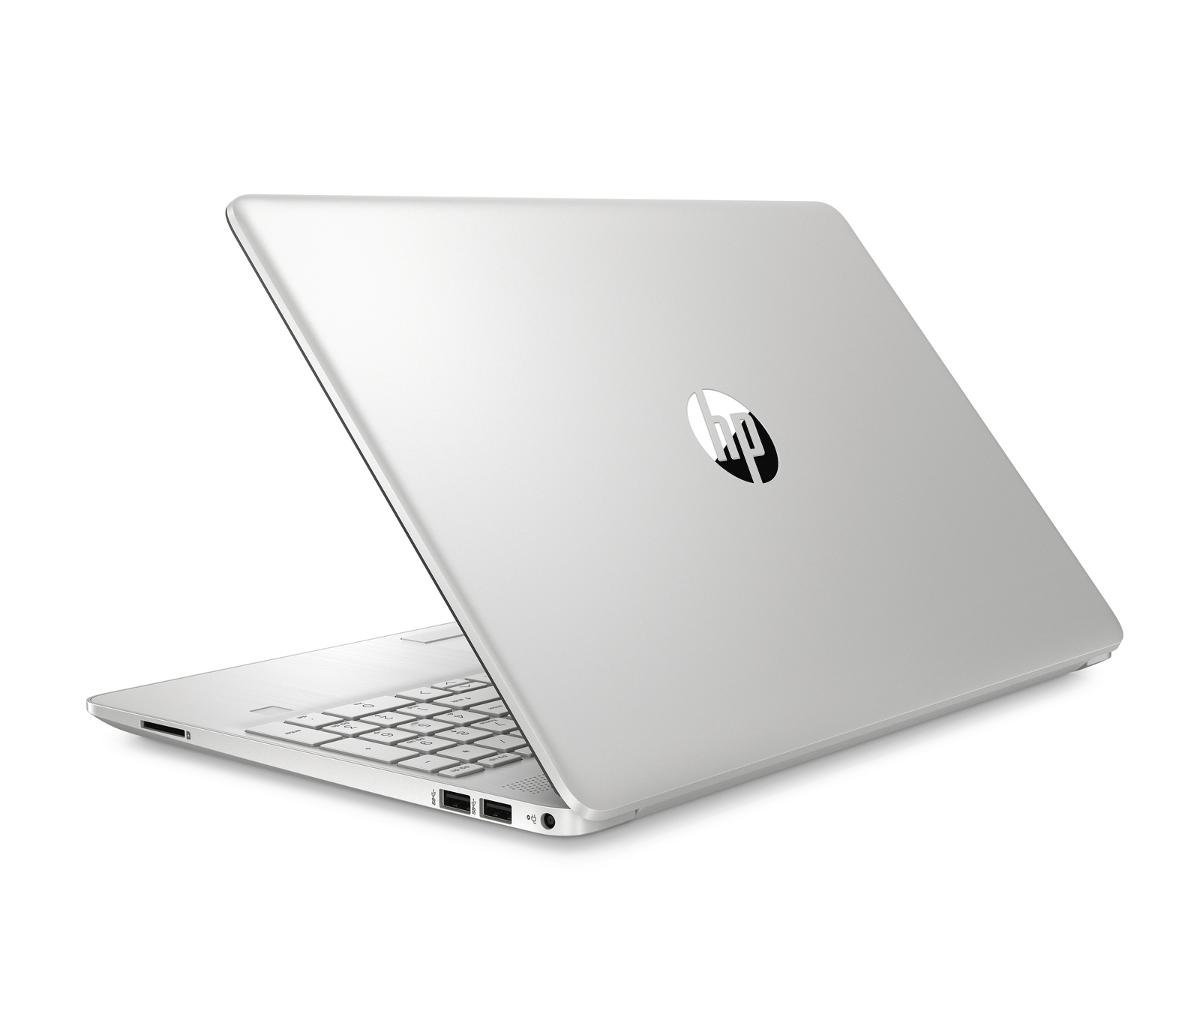 "Laptop HP 15-dw0013nw 6LL64EA, i3-7020U, 4 GB RAM, 15.6"", 256 GB, Windows 10 Home"